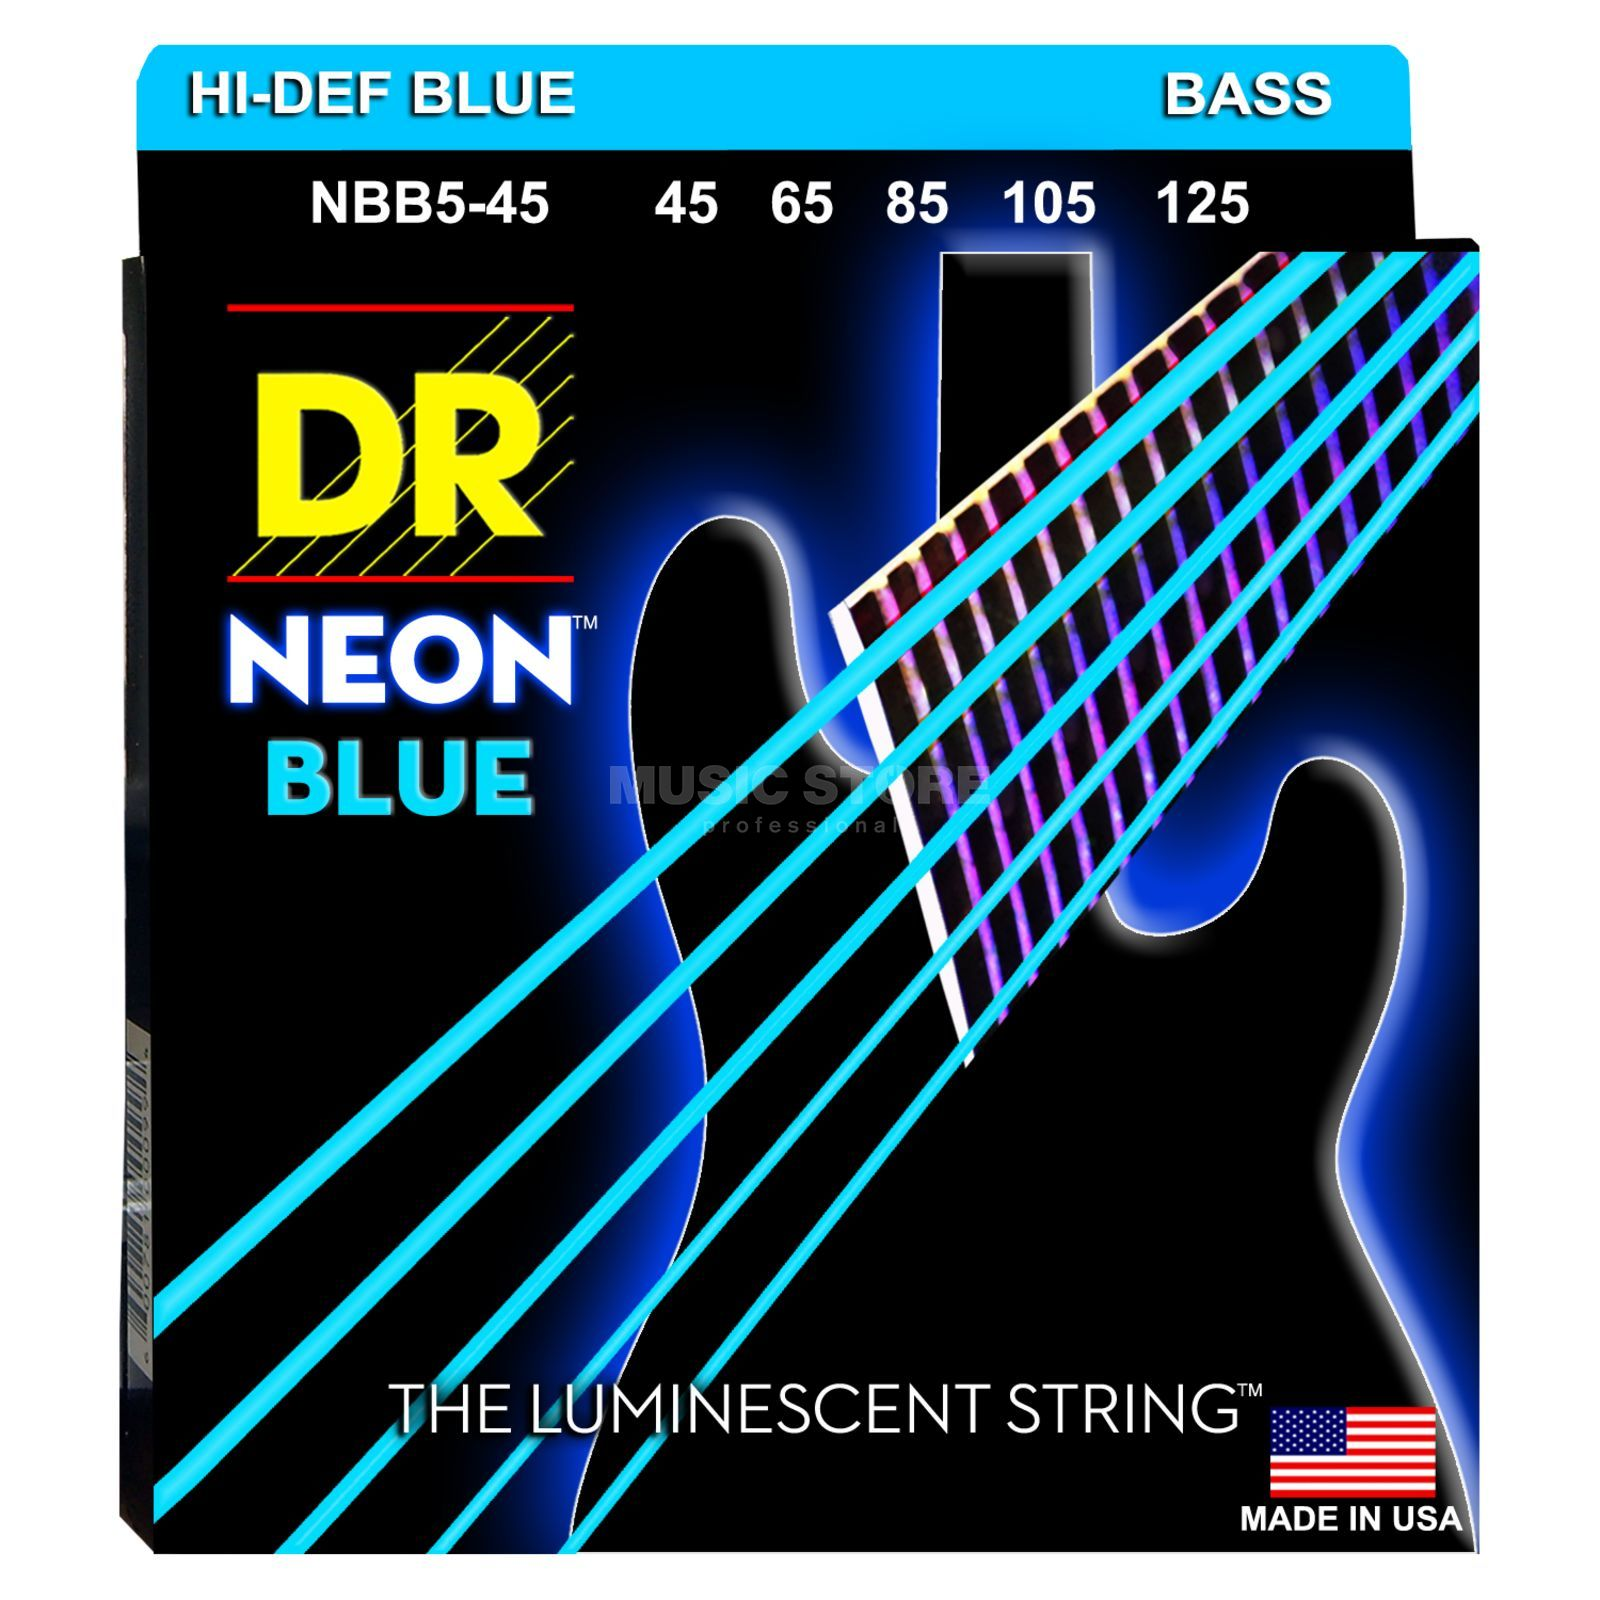 DR 6er Bass 45-125 Hi-Def Neon Blue Neon NBB5-45 Product Image